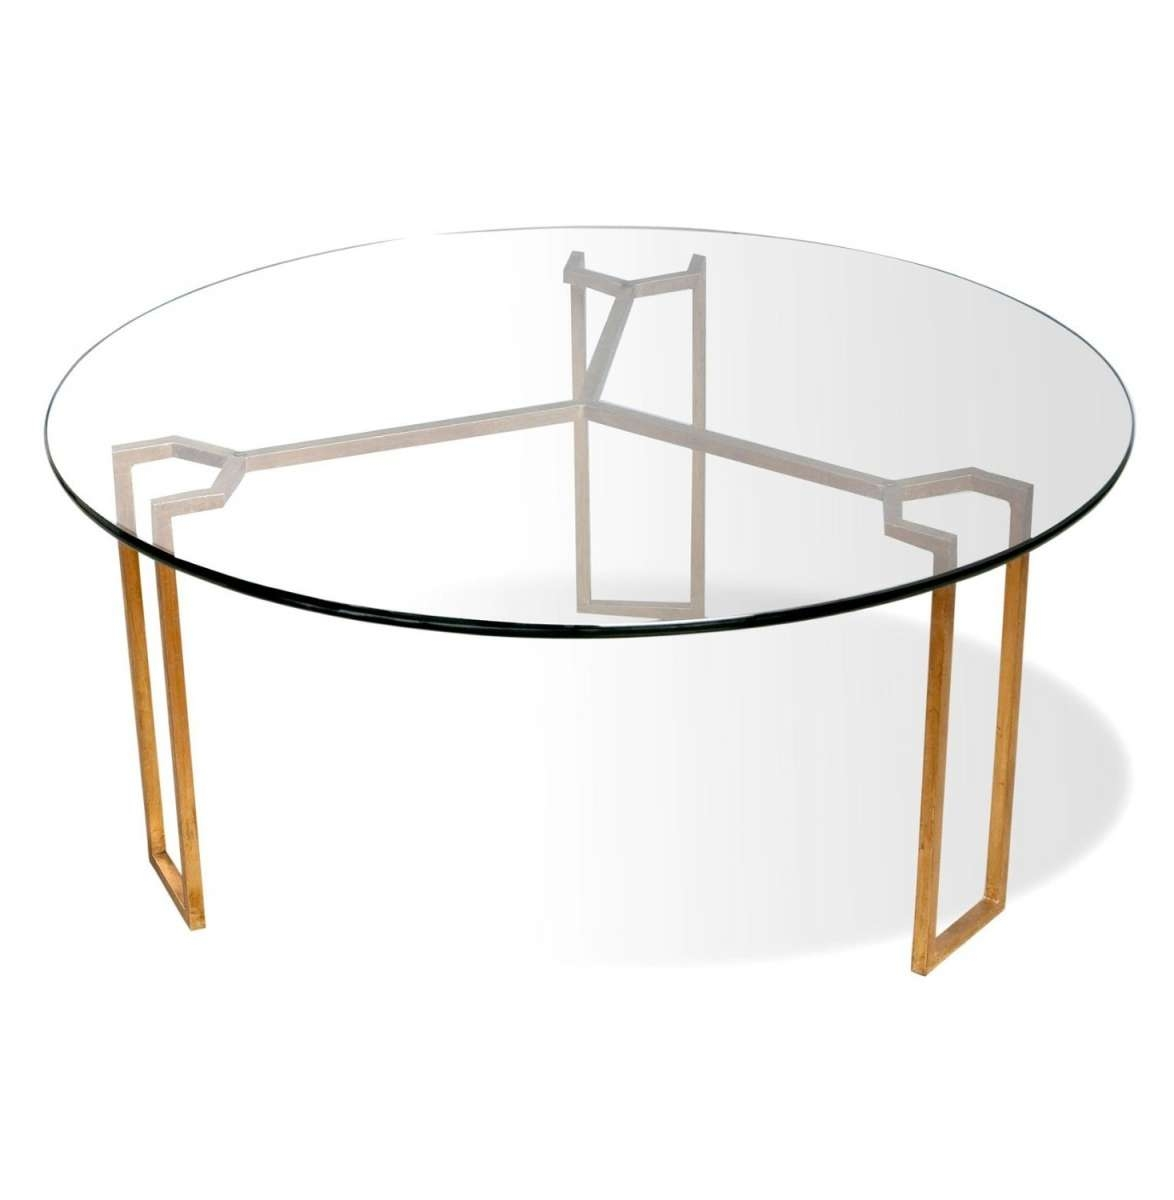 Furniture: Glass Contemporary Round Coffee Tables With Gold Metal Within Current Contemporary Round Coffee Tables (View 10 of 20)